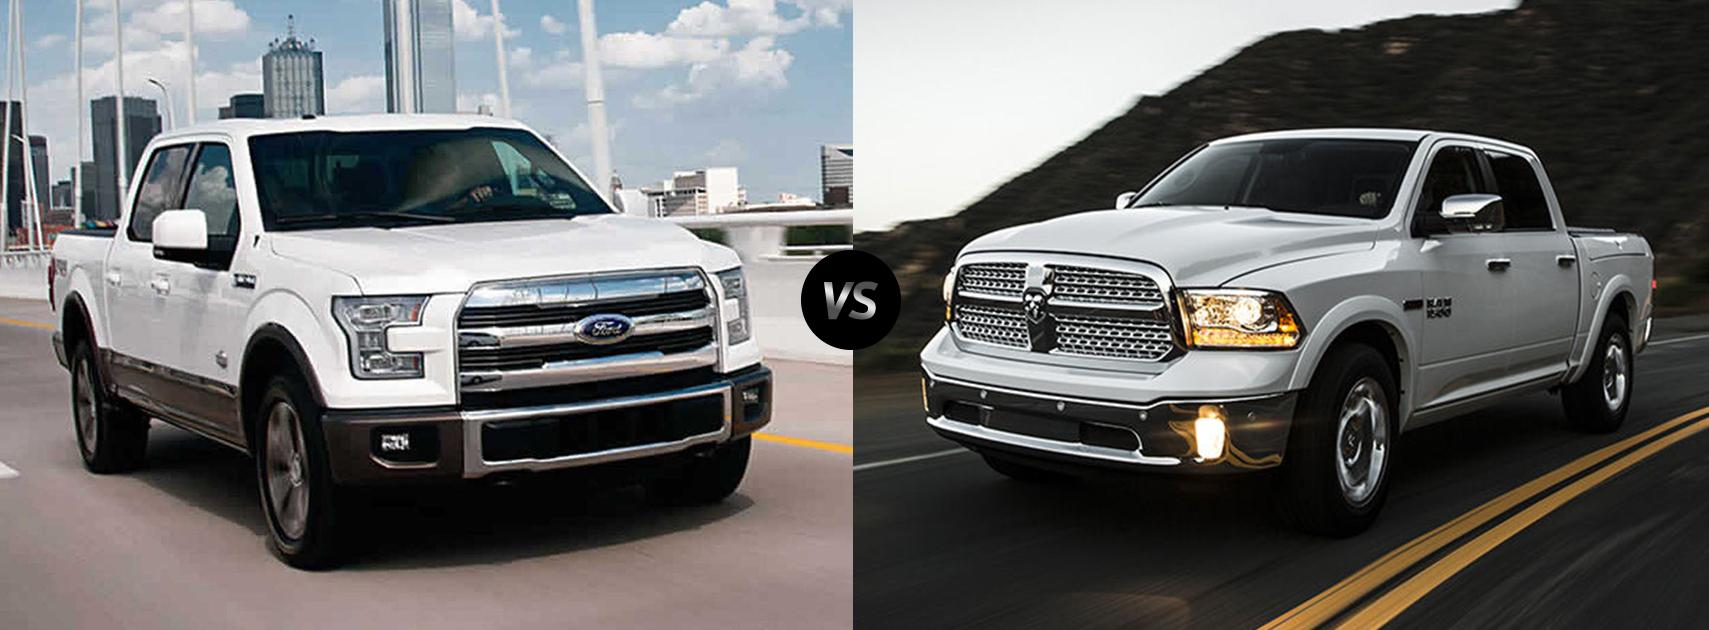 2020 Ford F-150 vs. 2020 Dodge Ram 1500 Comparison